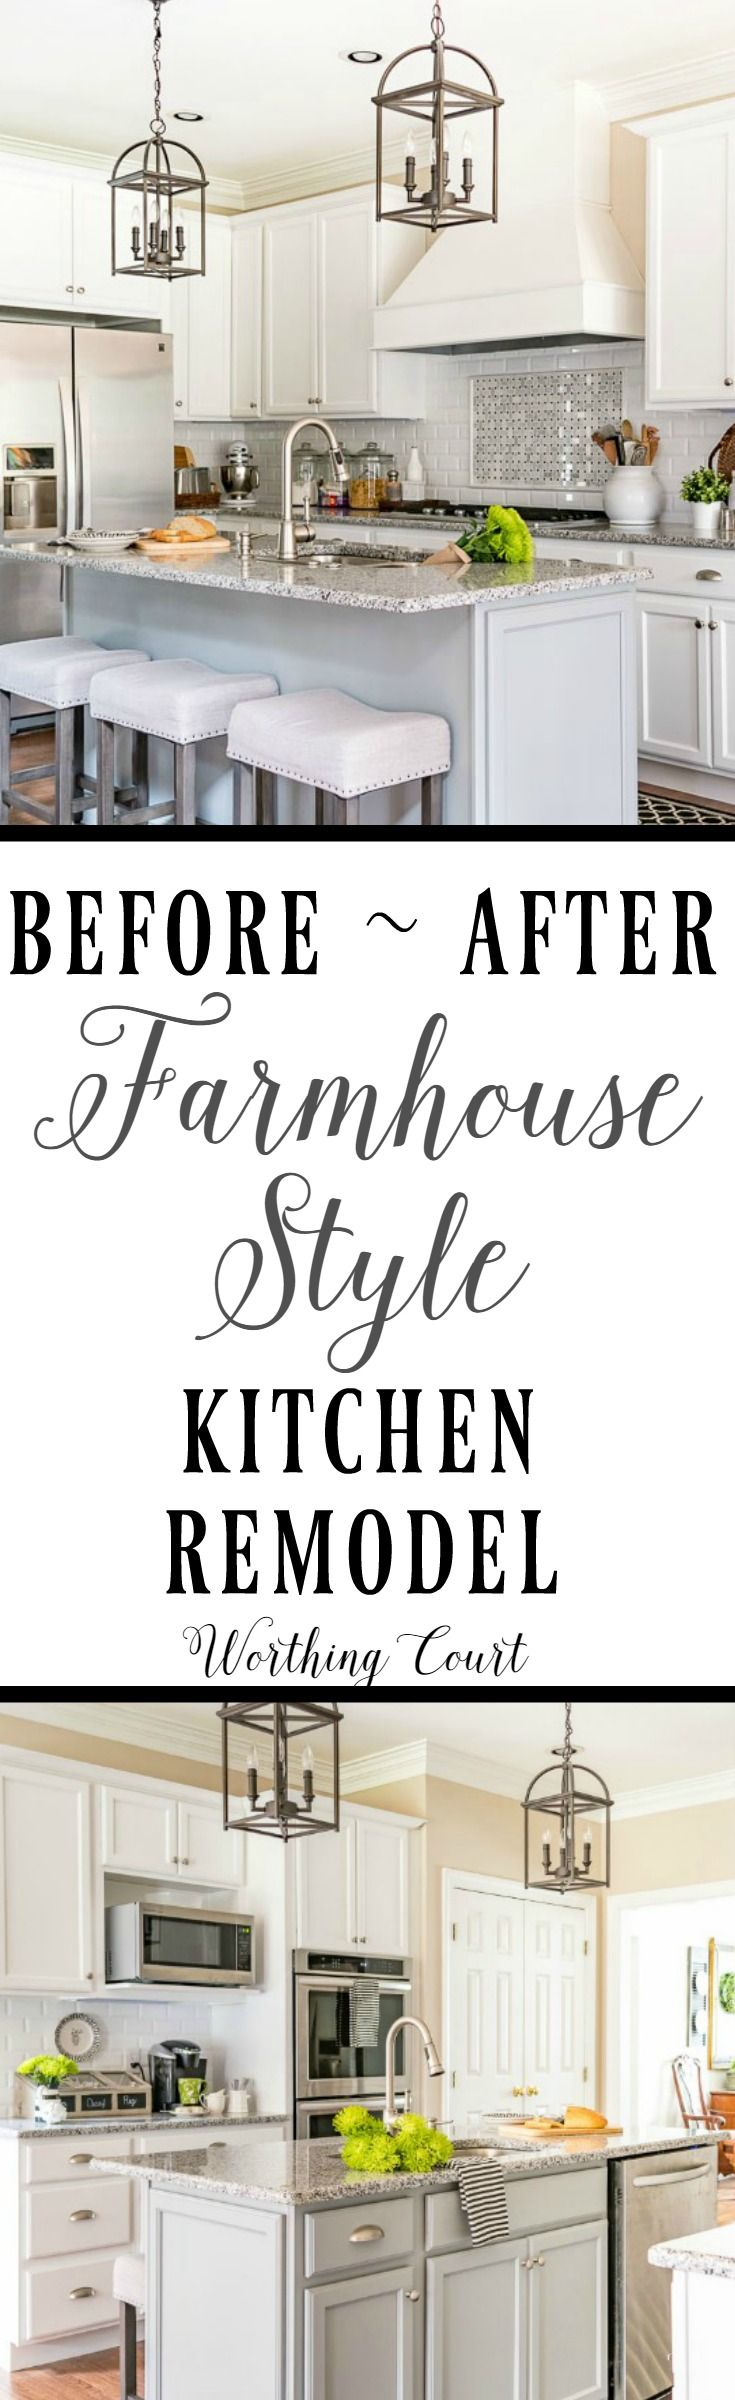 Before and After Farmhouse Style Kitchen Remodel    Worthing Court